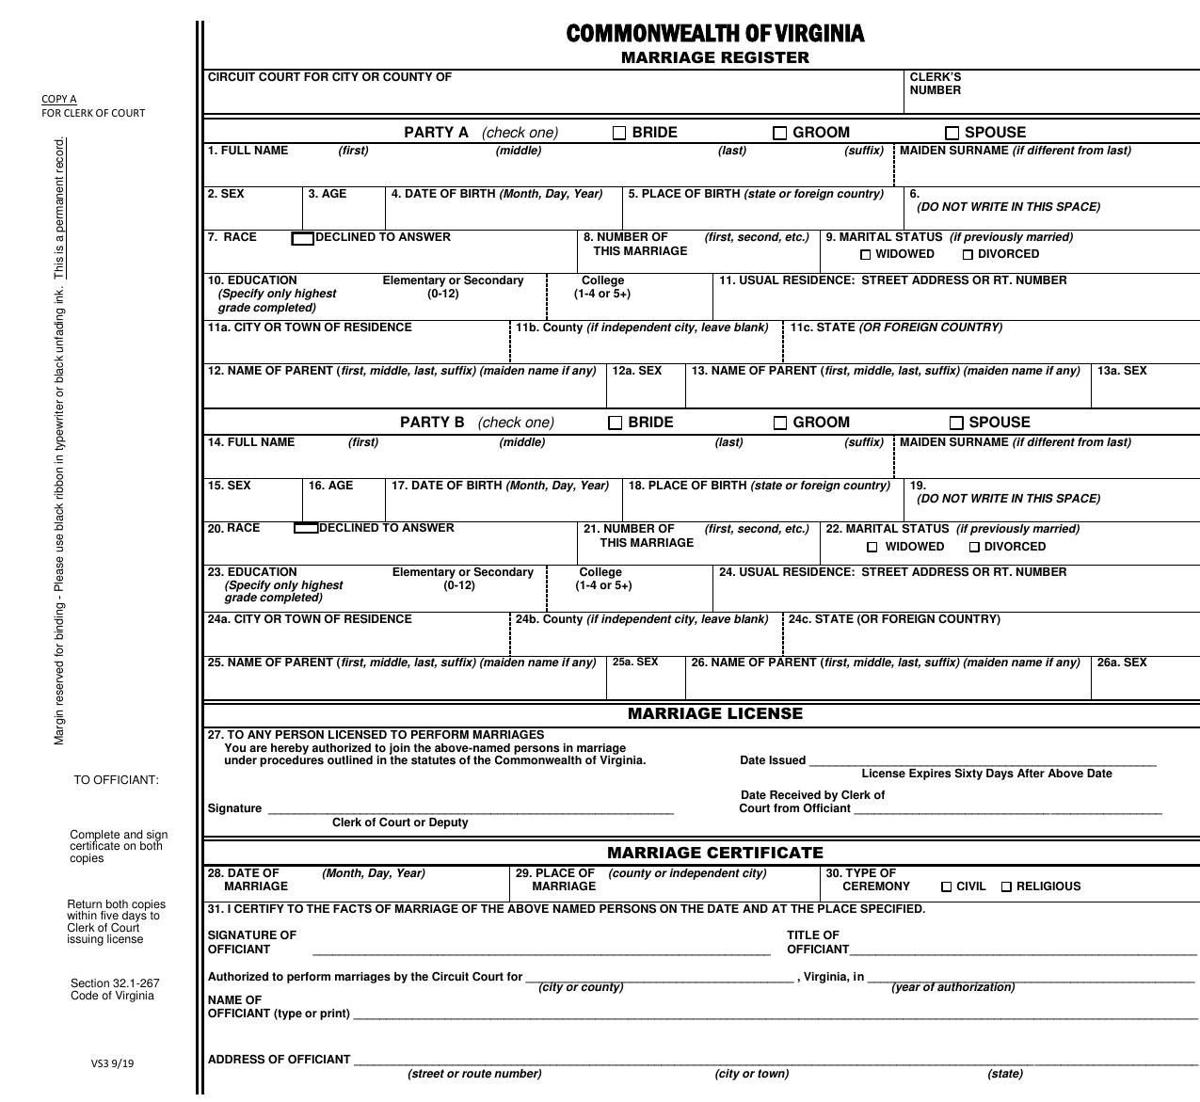 Revised marriage license